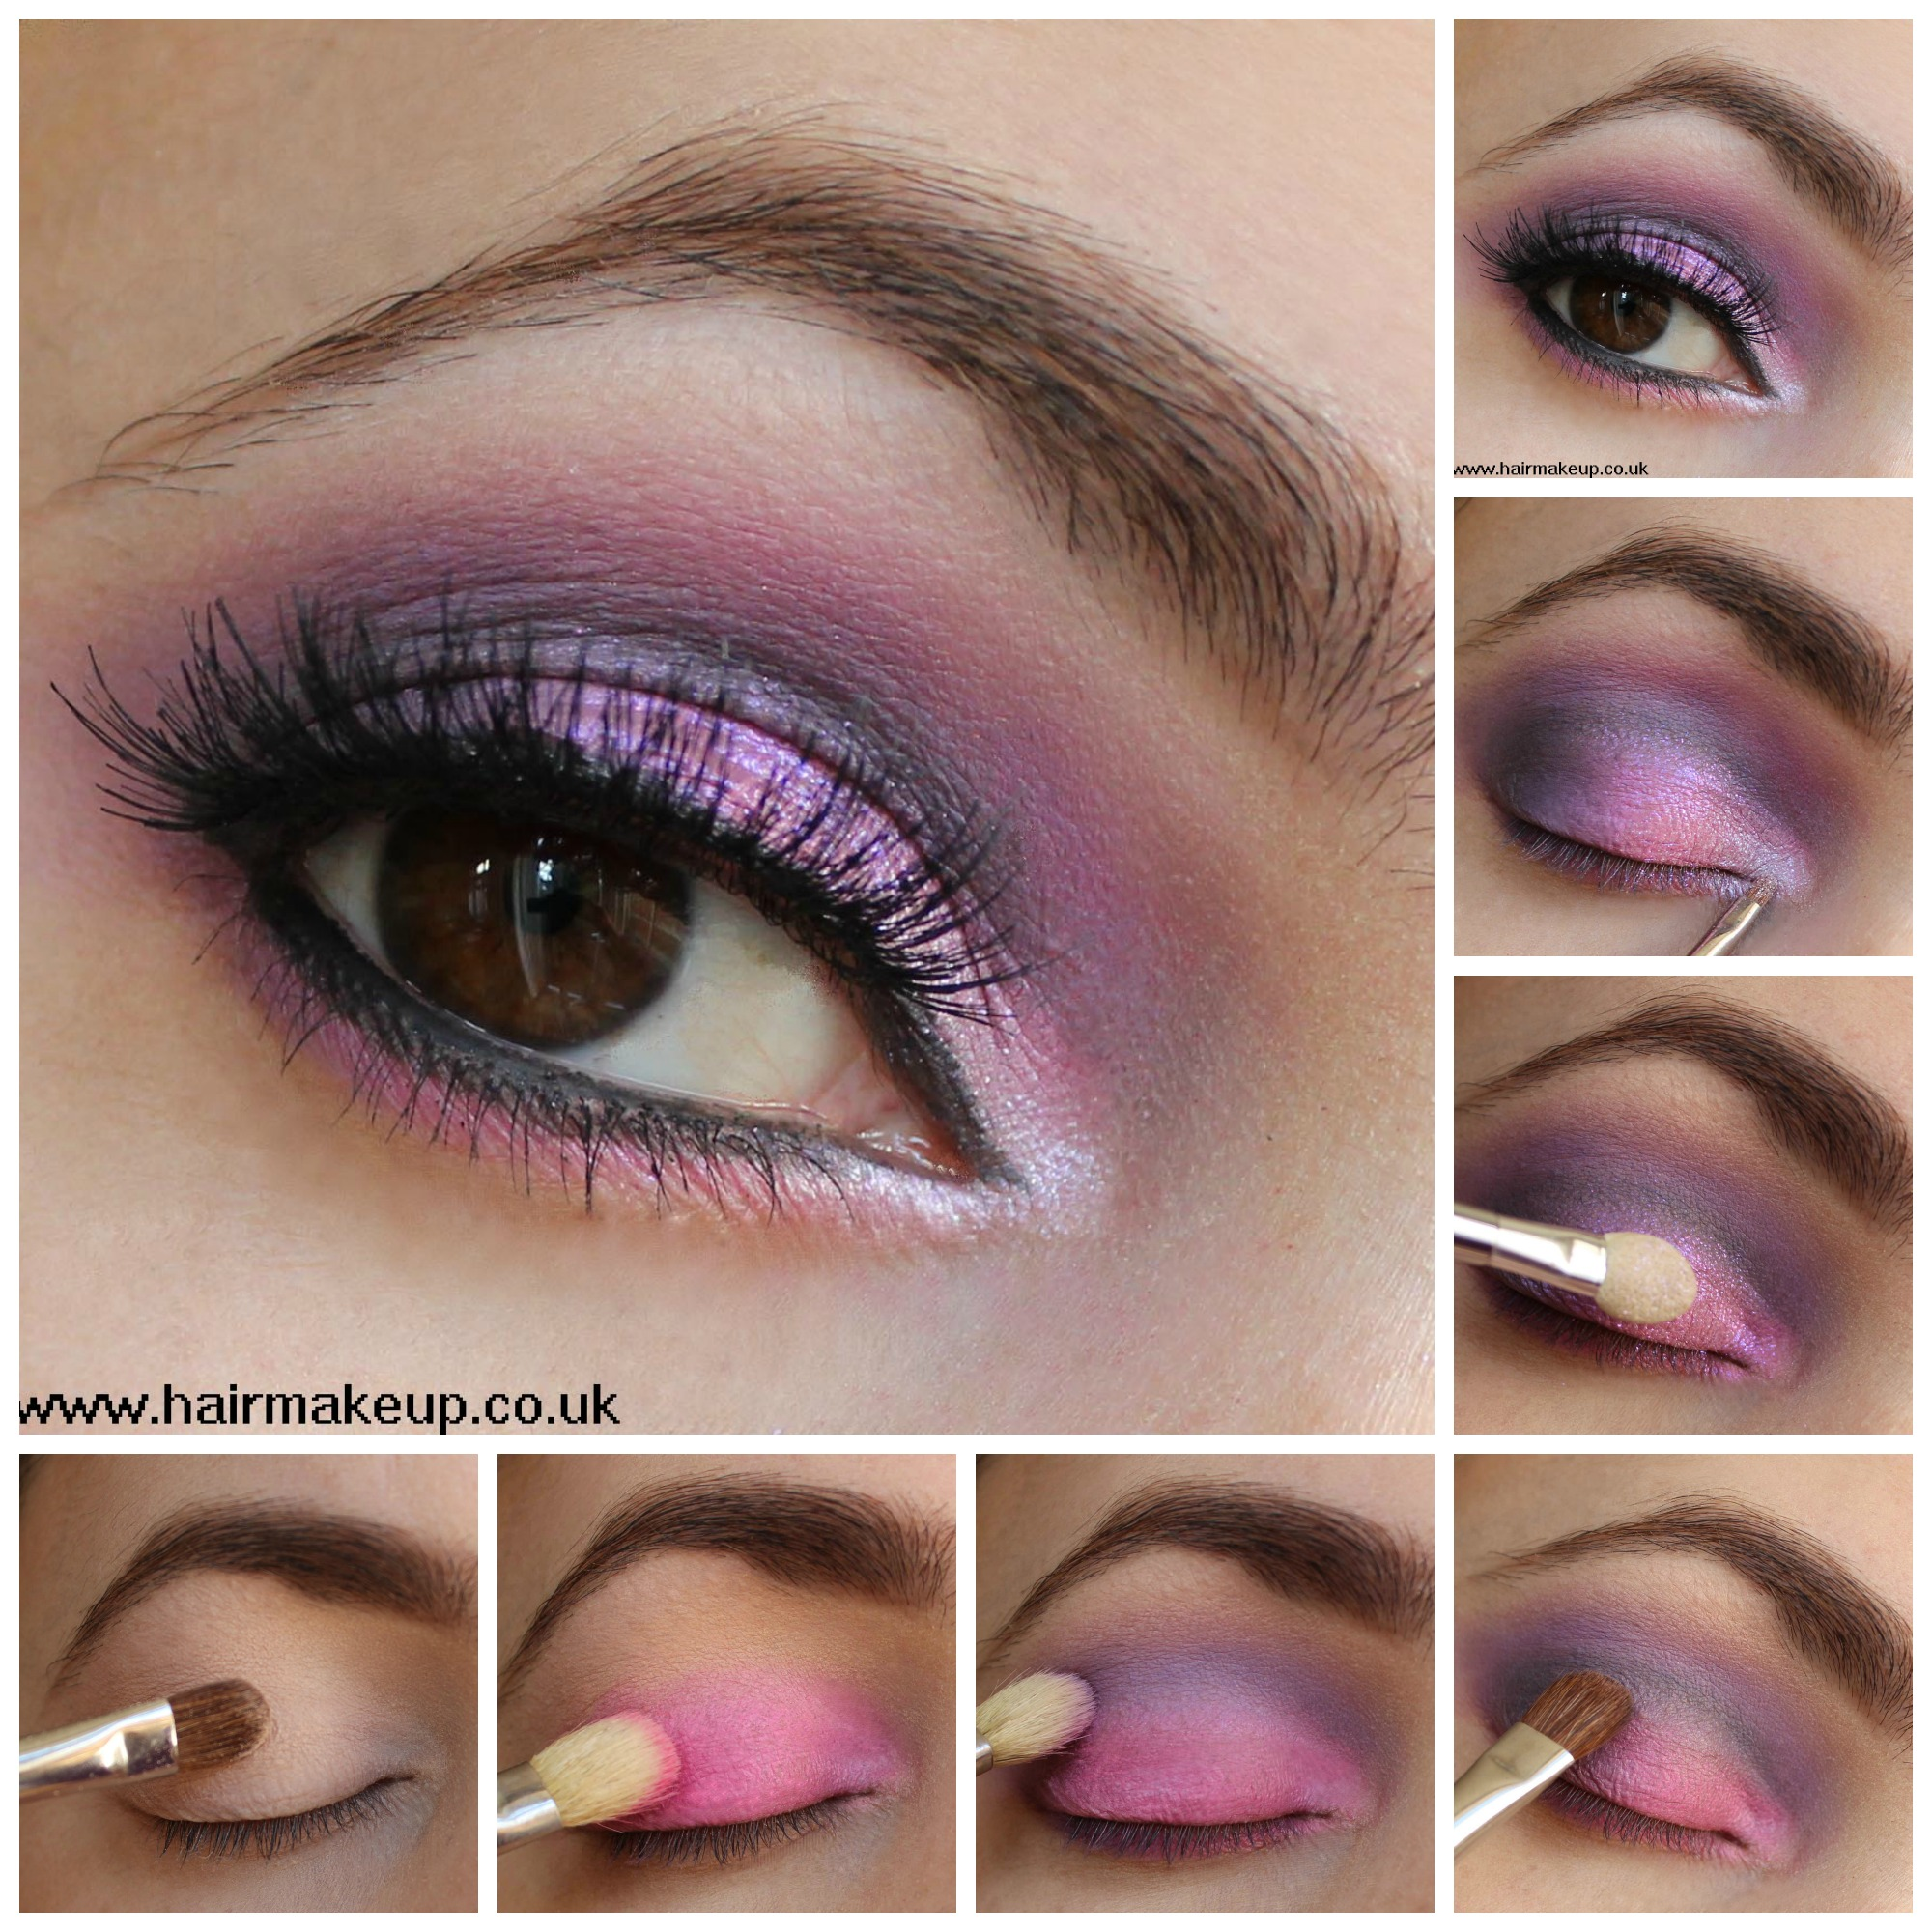 step by step party make-up look - tina prajapat